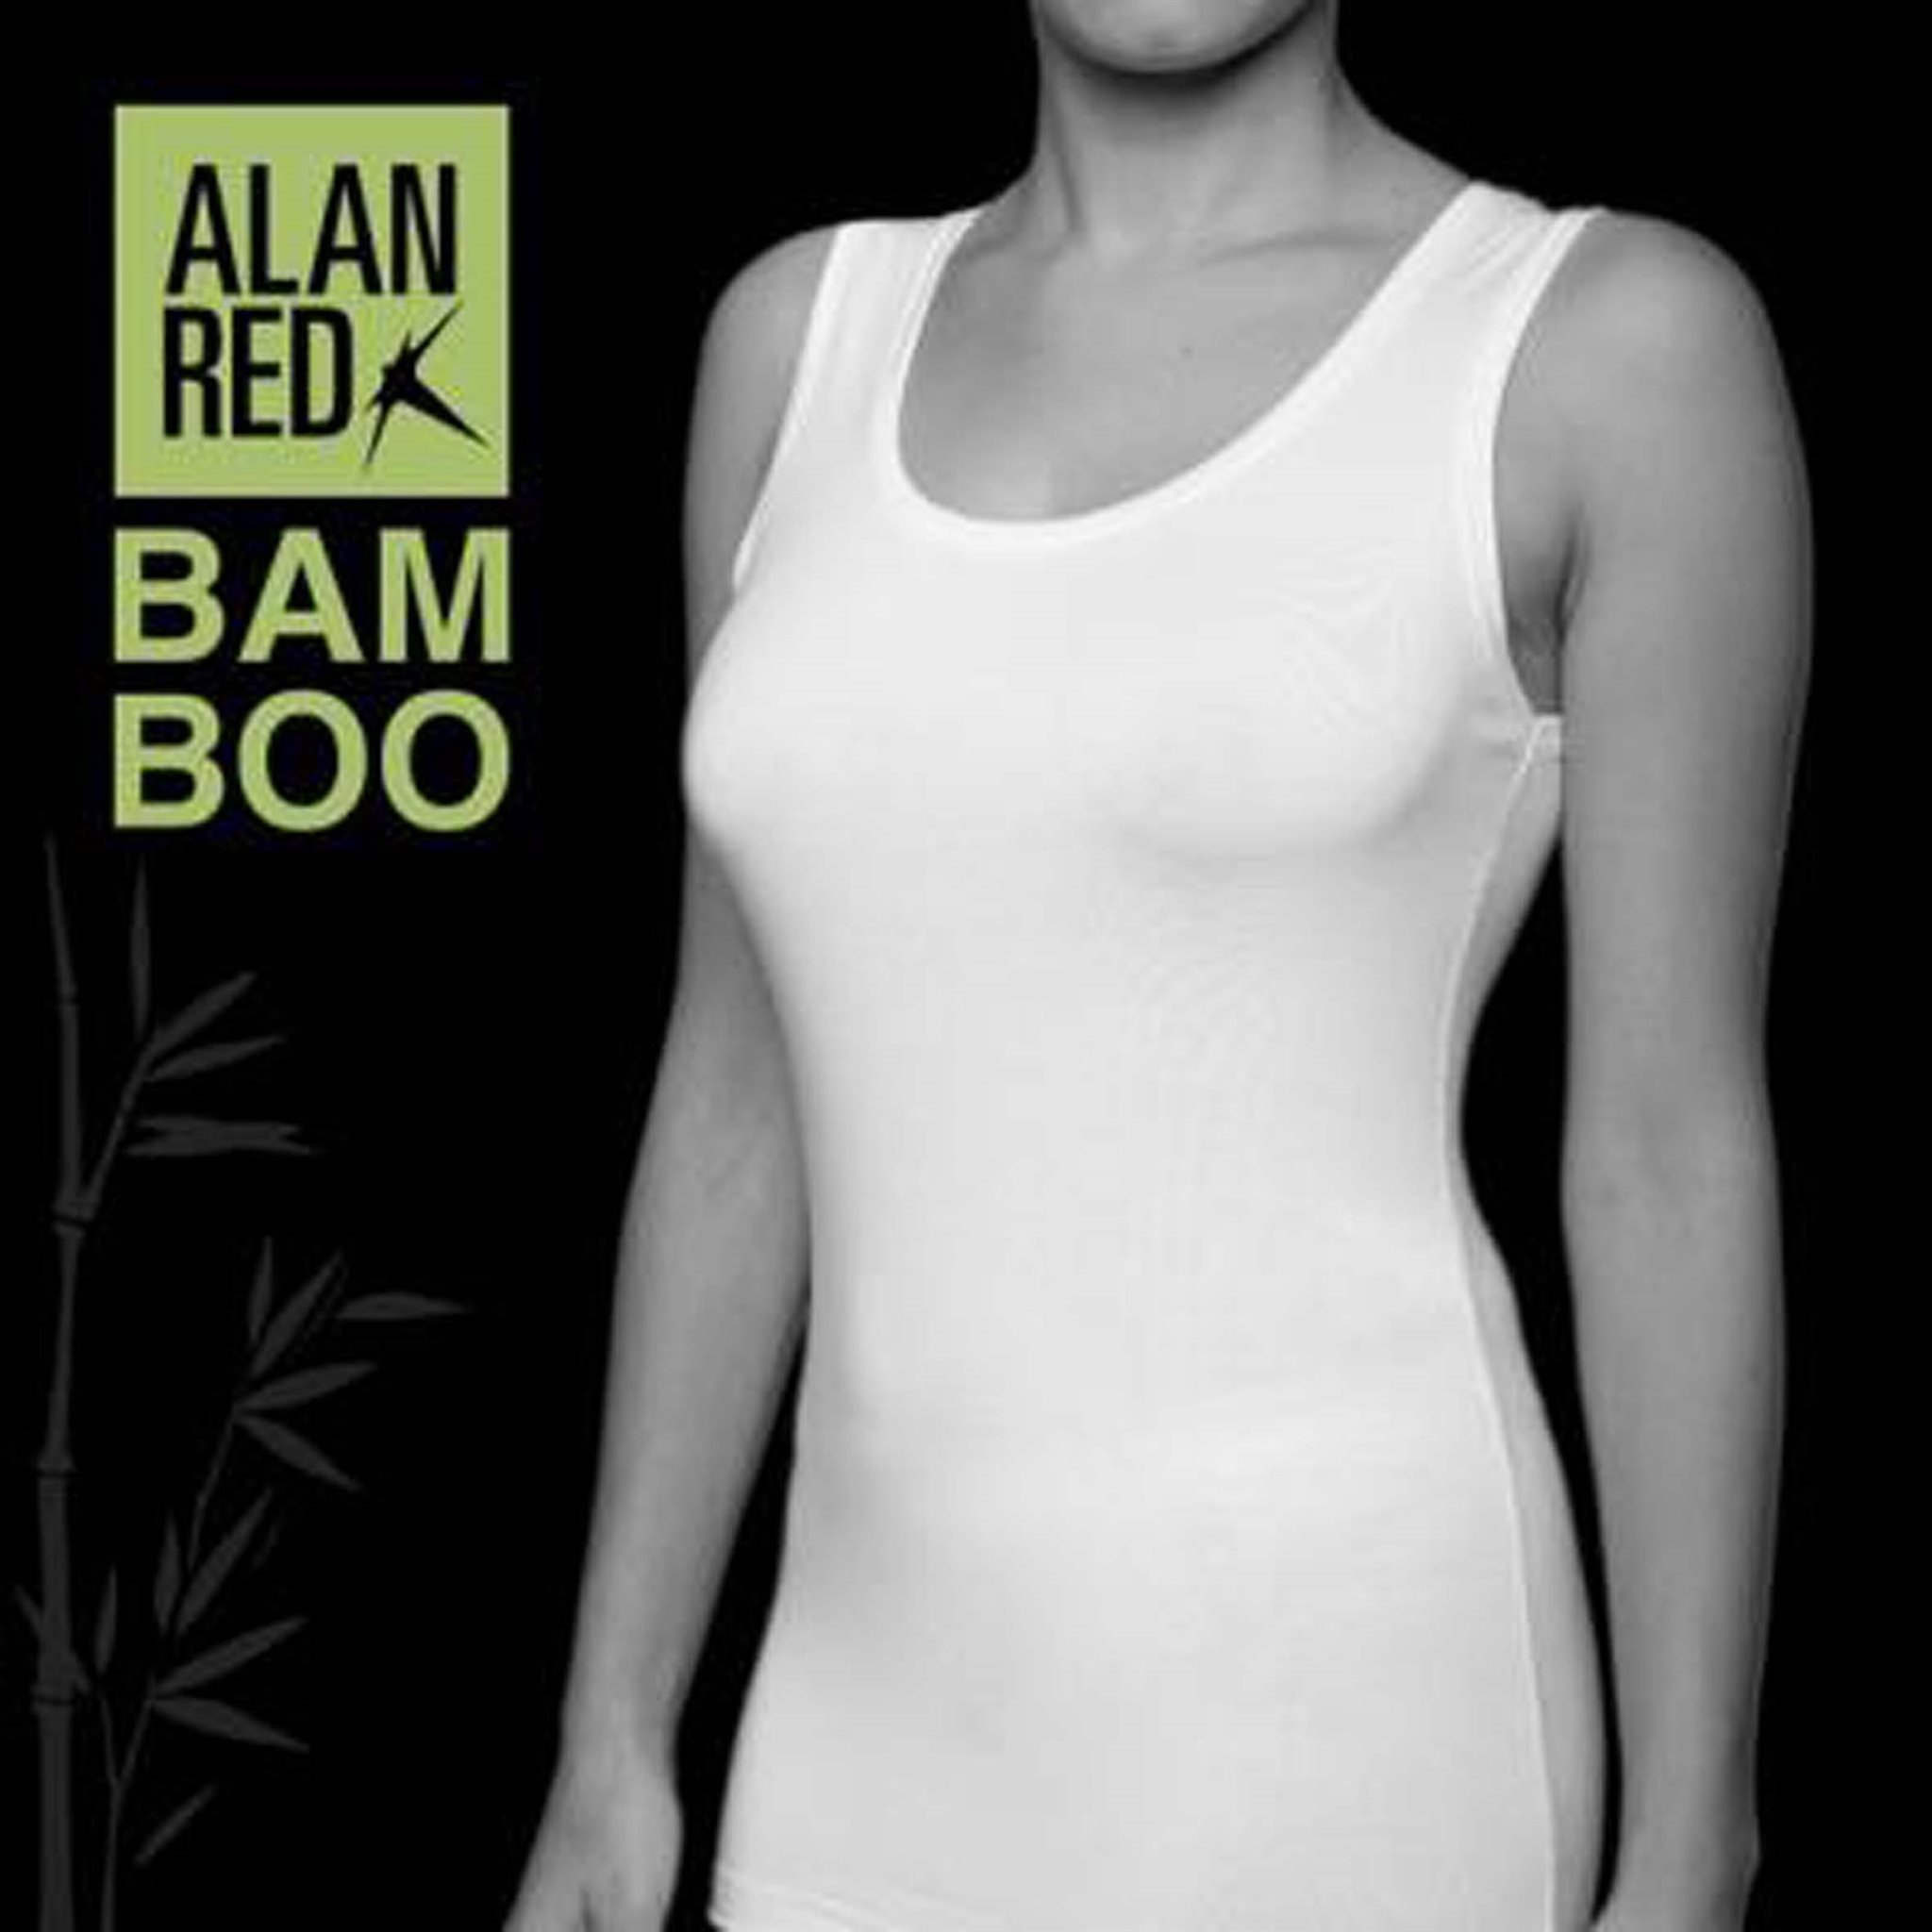 SINGLET BARBARA ALAN RED